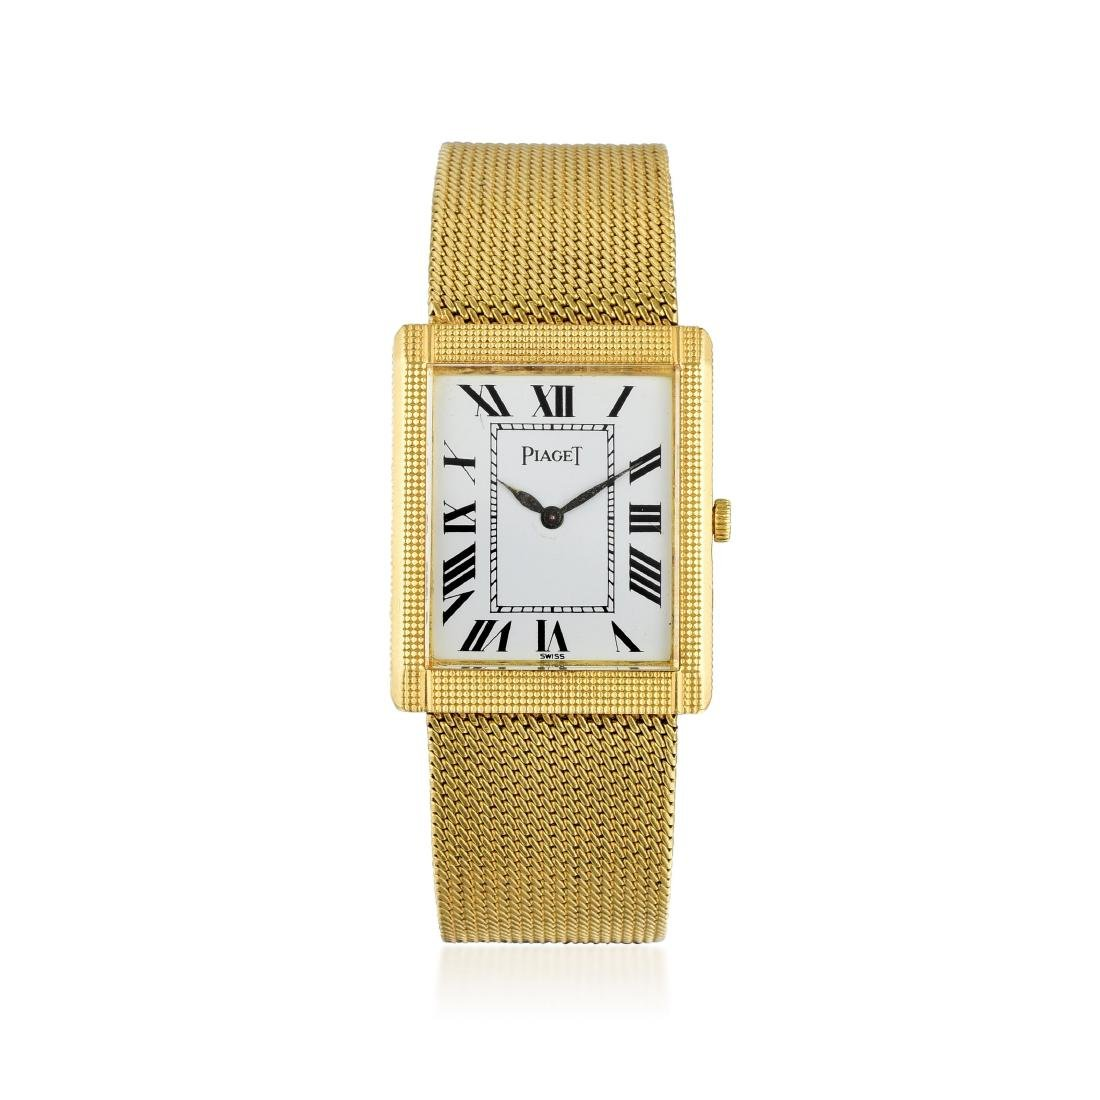 Piaget Ref. 9151 in 18K Gold